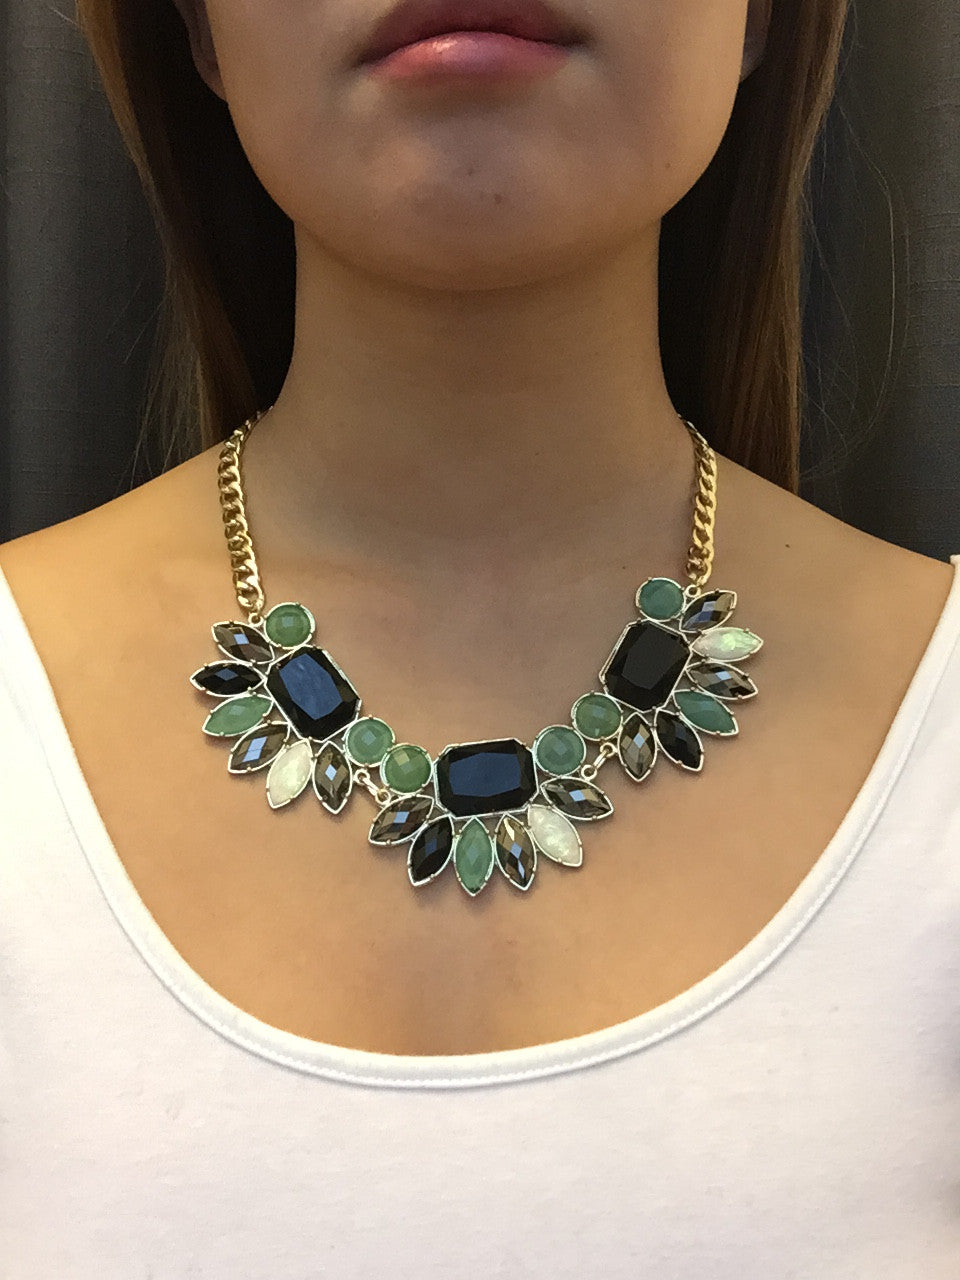 Spring Bloom Jewels Statement Necklace - Black/Mint